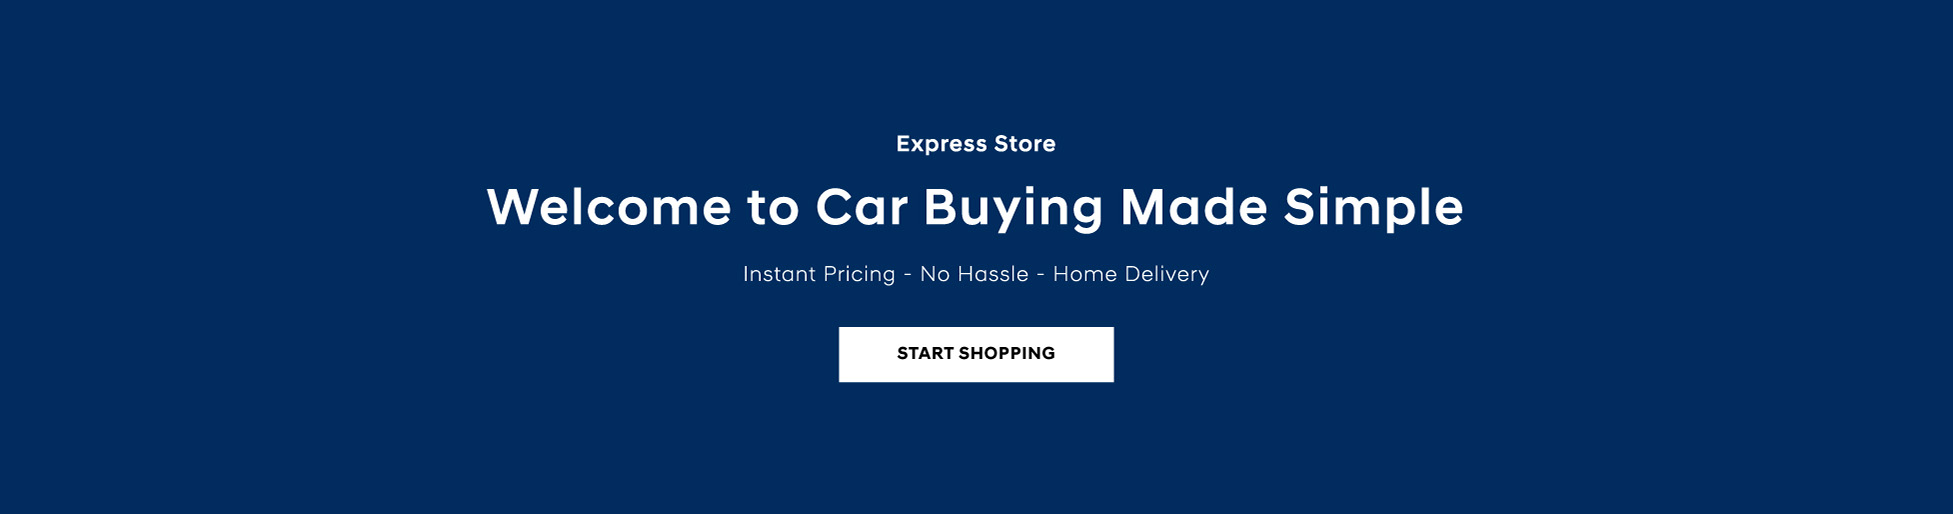 Welcome to Car Buying Made Simple. Instant Pricing, No Hassle, Home Delivery.